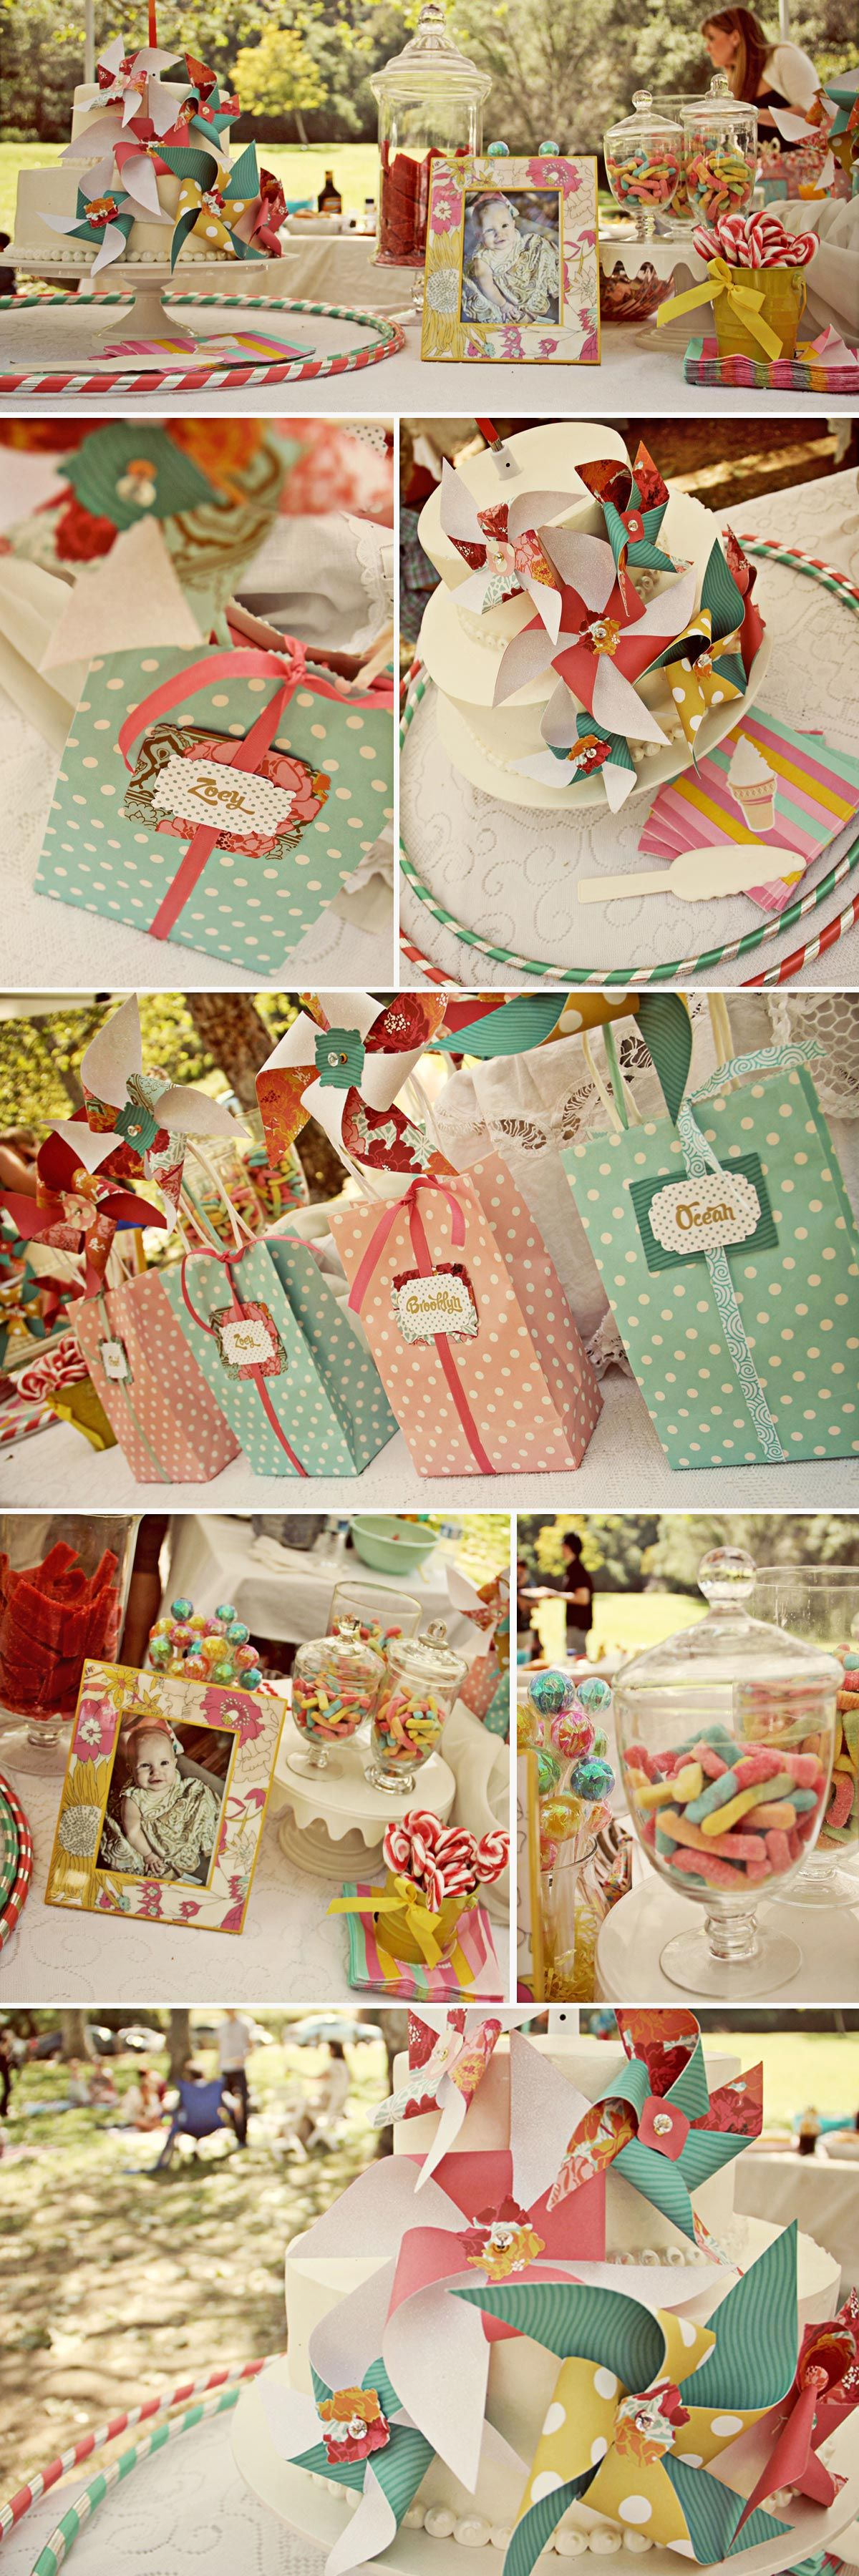 Vintage girly birthday party I love the pinwheels and those goody